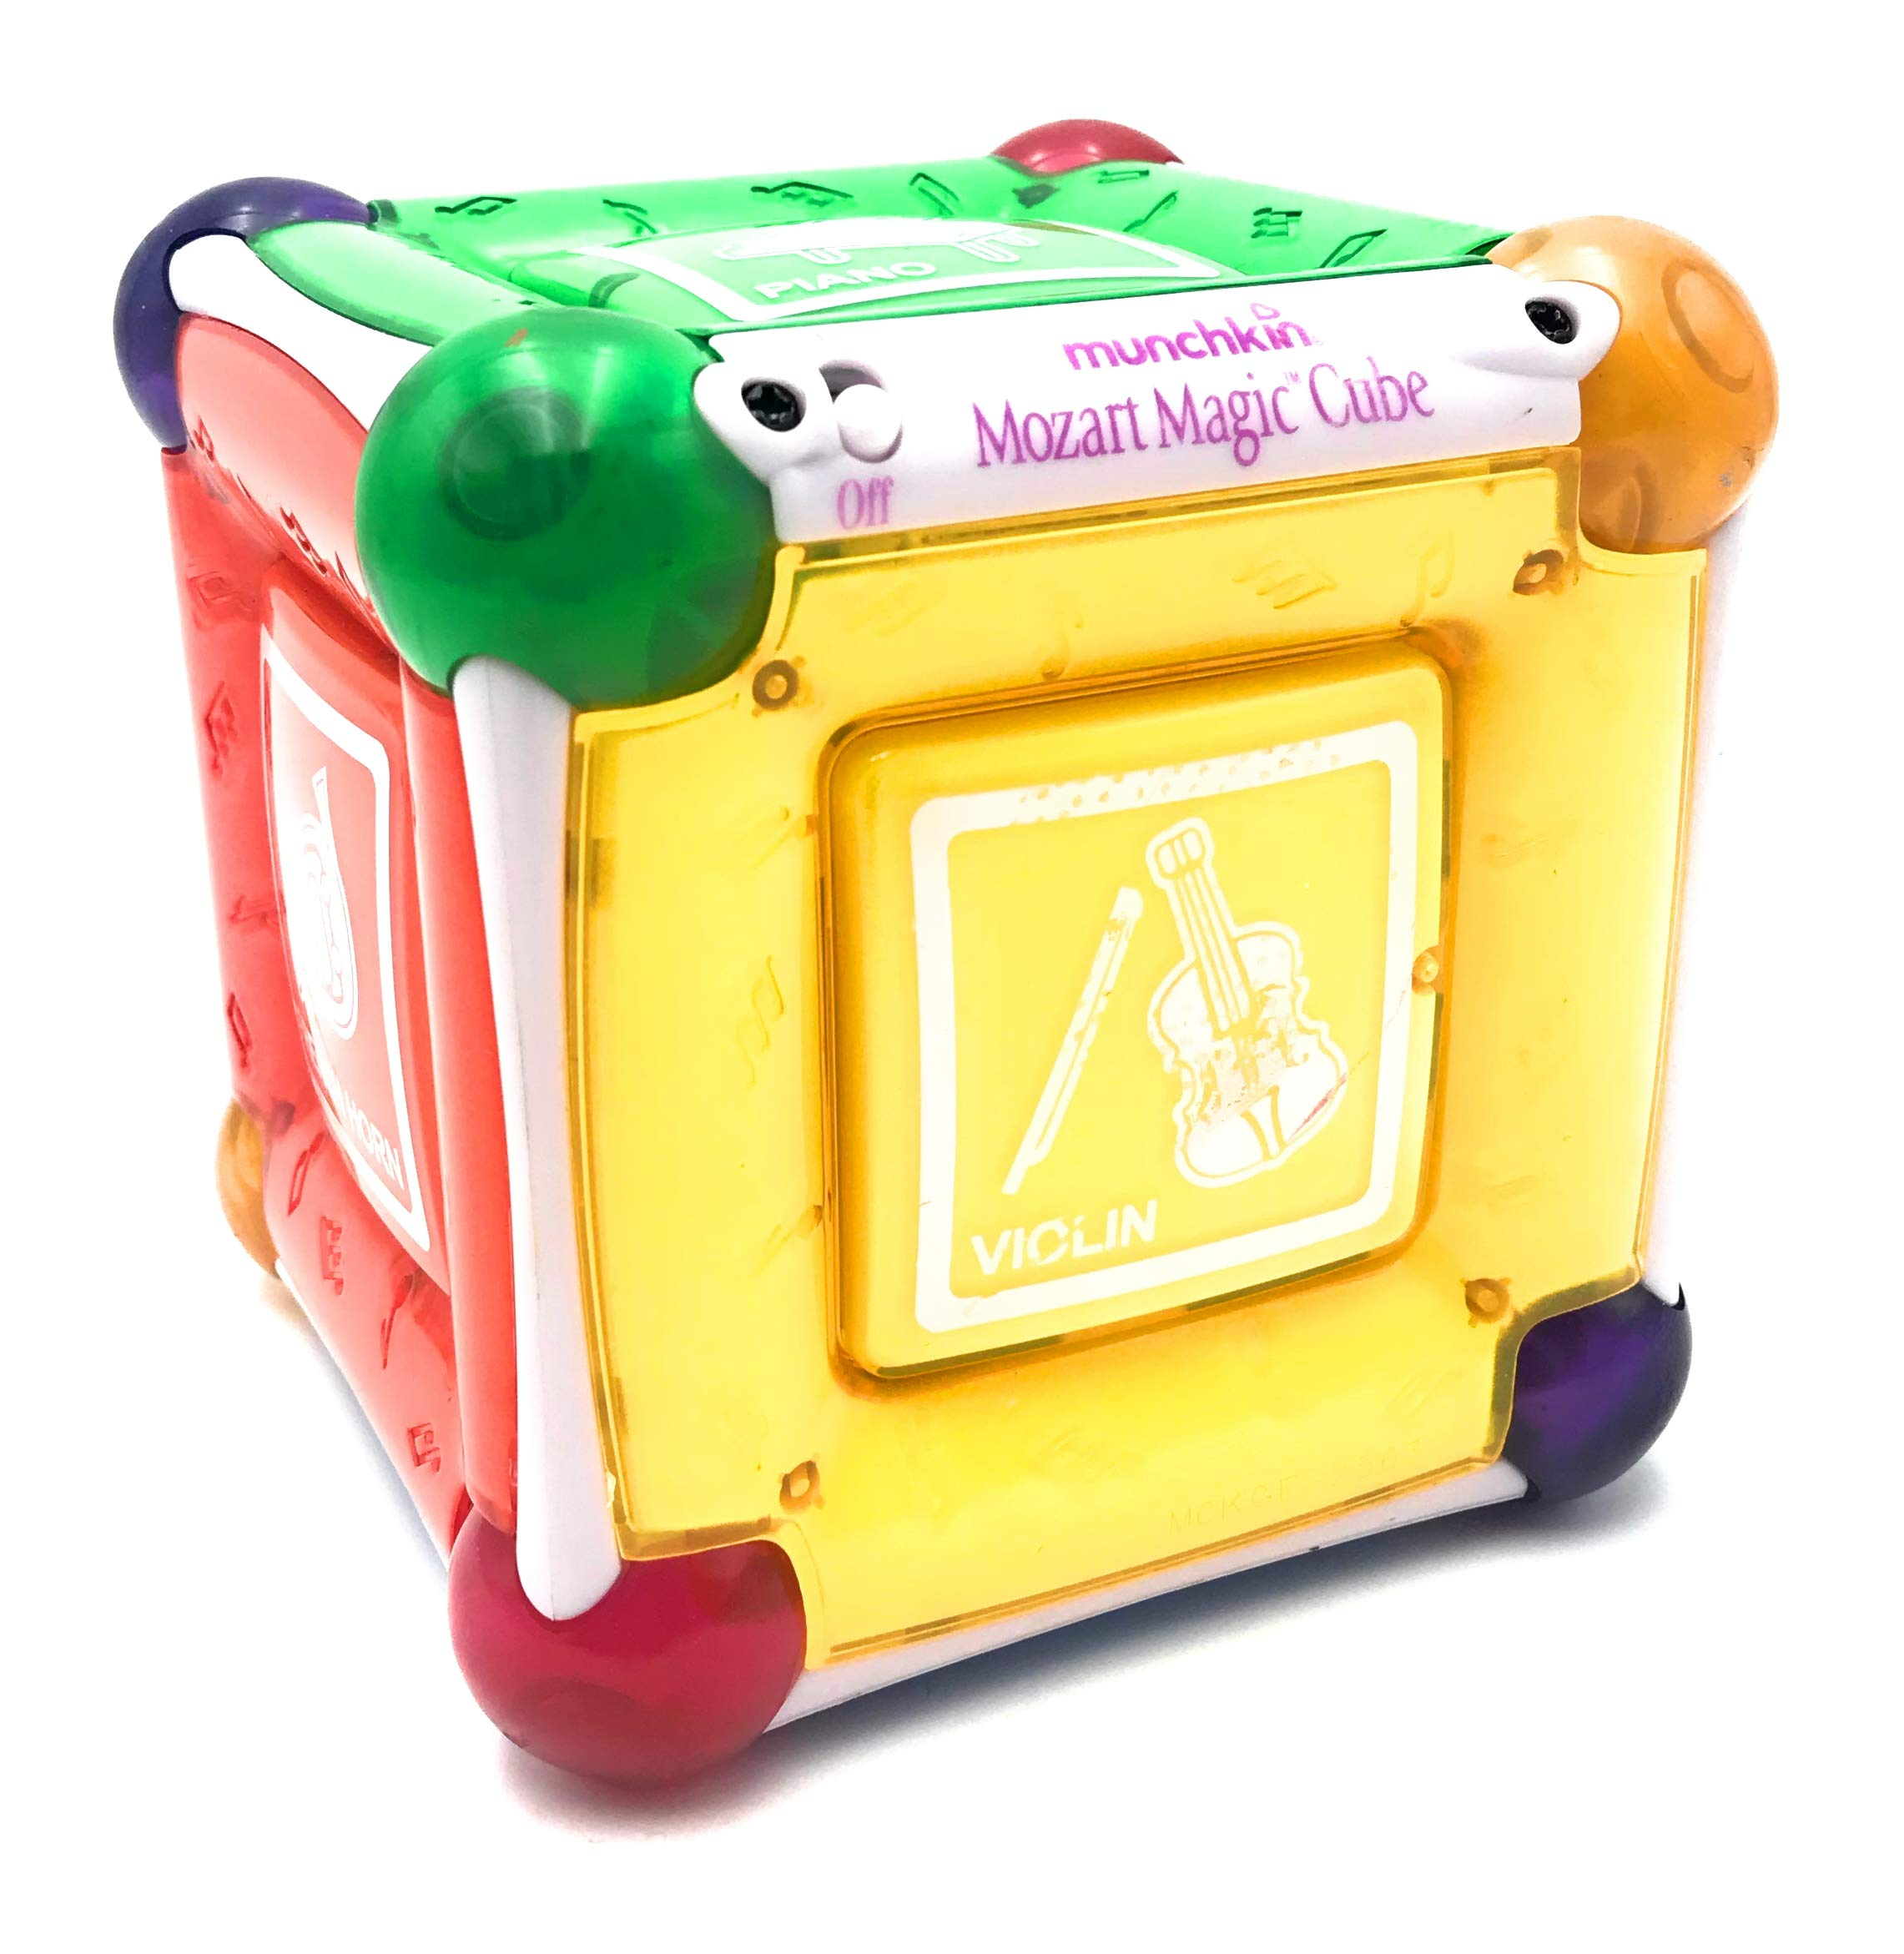 Munchkin Mozart Magic Cube Size: Pack of 1 Toy, Kids, Play, Children- Buy  Online in Andorra at andorra.desertcart.com. ProductId : 3335170.